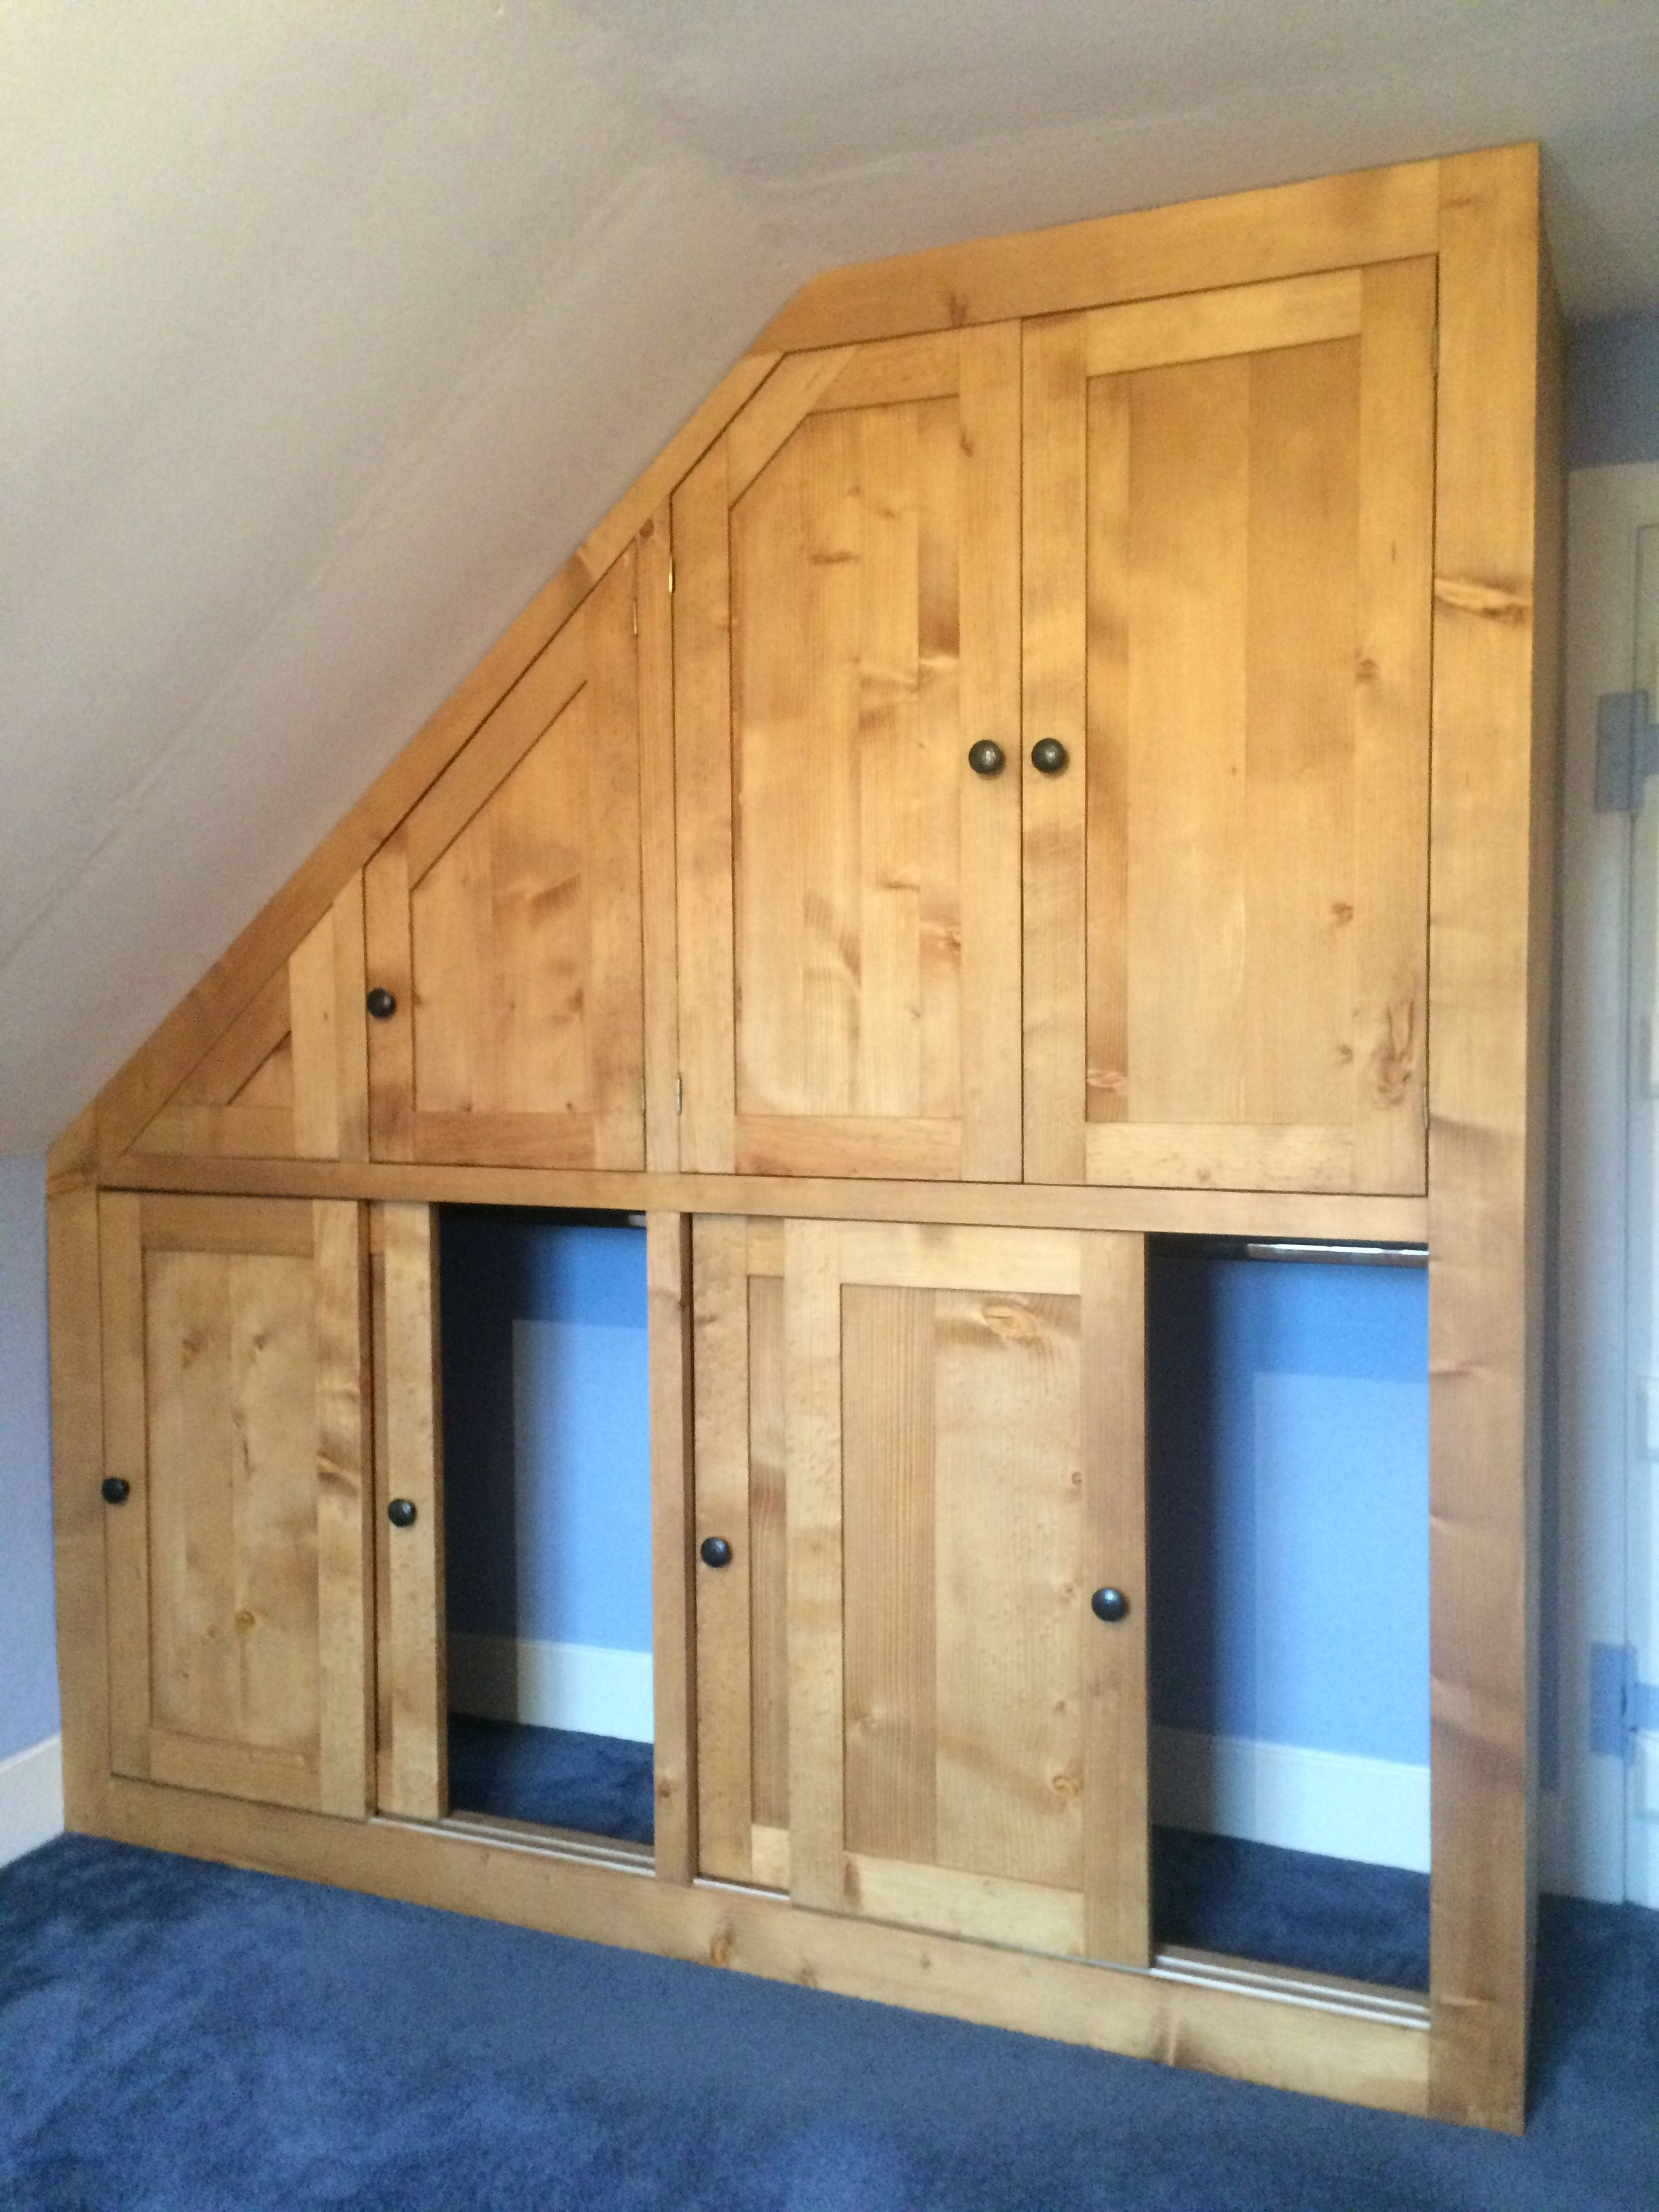 sliding doors in this bespoke solid wood fitted wardrobe built into